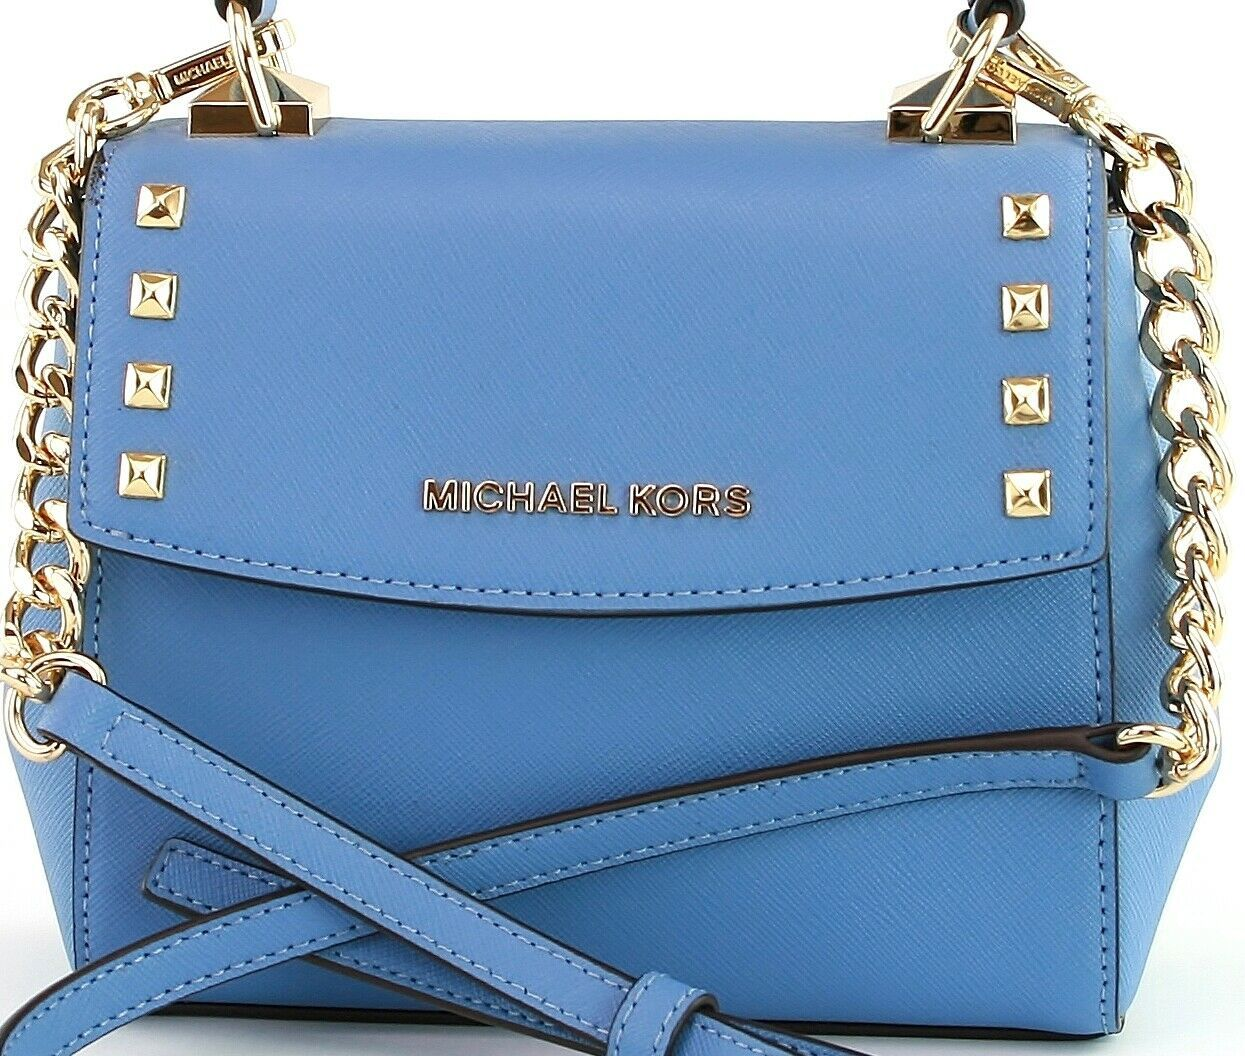 Michael Kors Cross Body Bag Karla Leather Small Handbag French Blue RRP £200 image 7